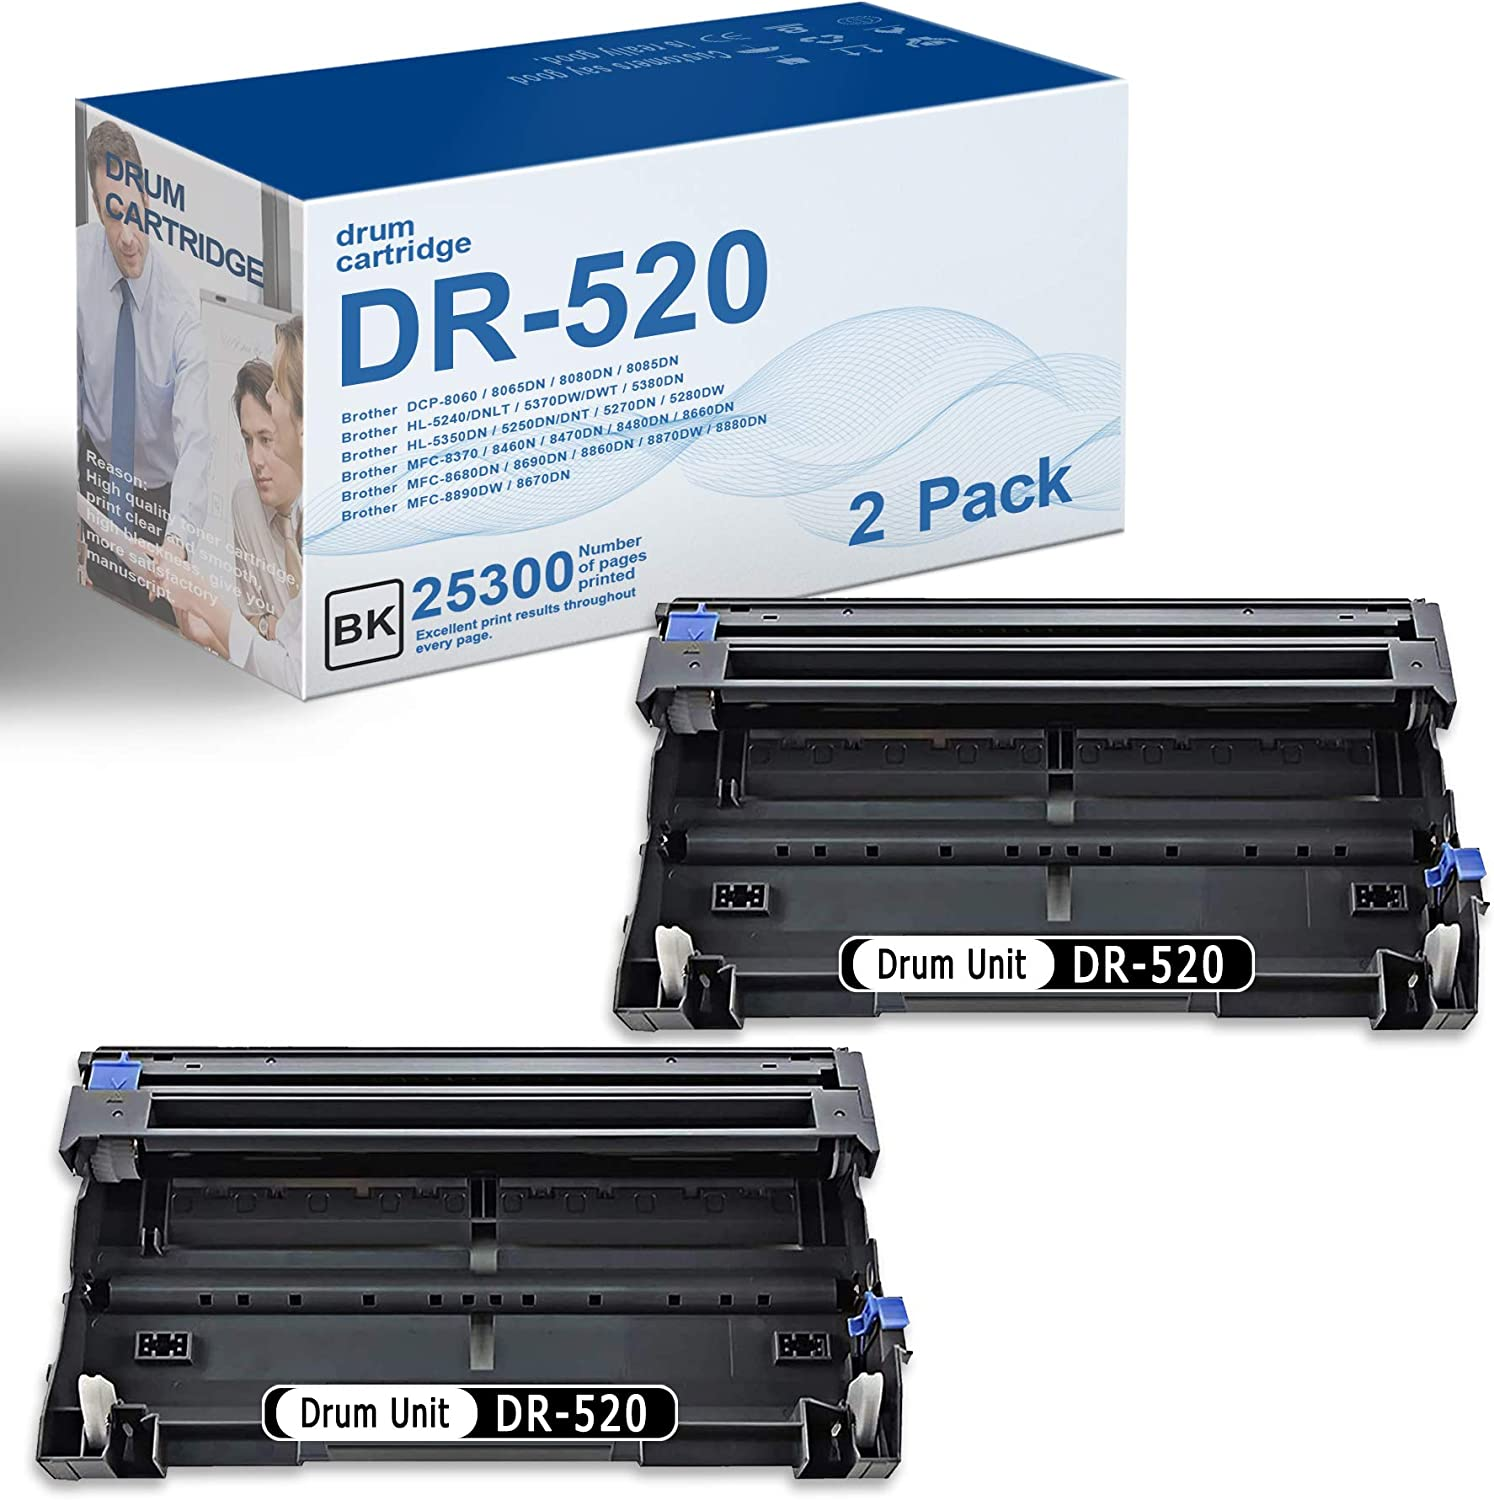 2 Pack Black DR-520 DR520 Compatible Drum Unit Replacement for Brother DCP-8060 8080DN 8085DN HL-5240/DNLT 5380DN 5350DN 5270DN 5280DW MFC-8370 Printer Drum Unit,High Page Yield Up to 25,300 Pages